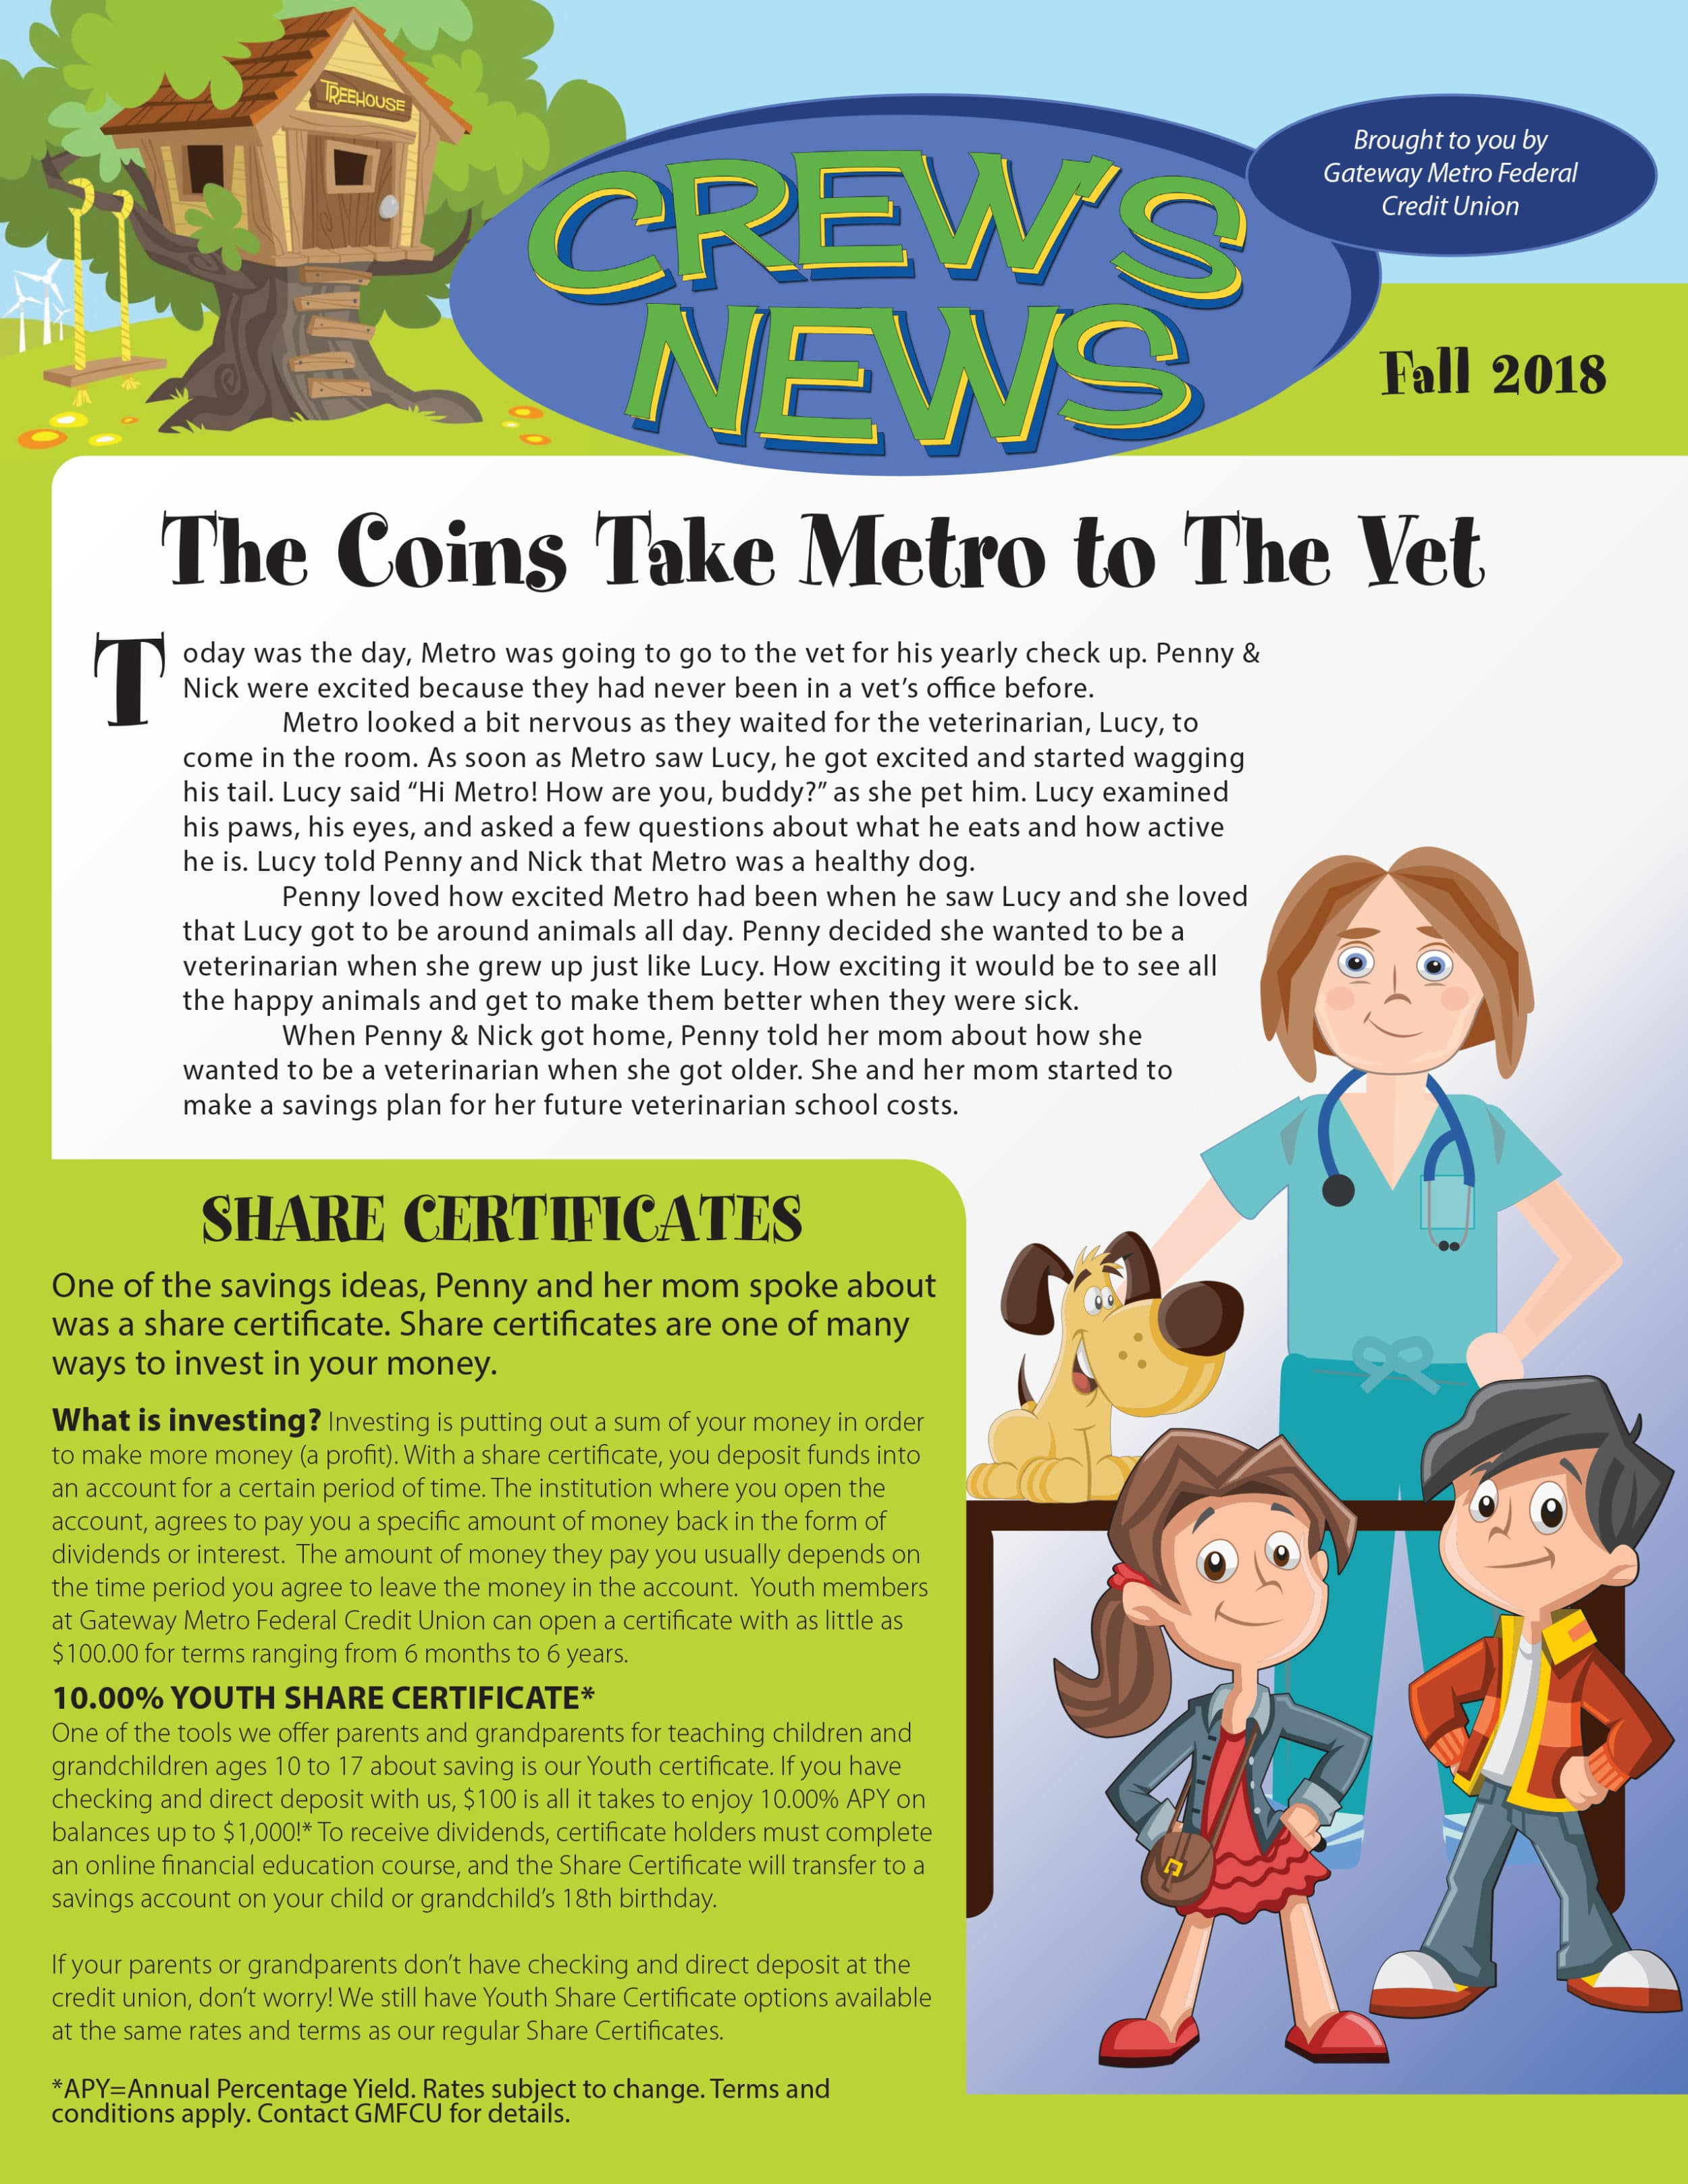 This image links to the fall 2018 'Crews News' newsletter PDF